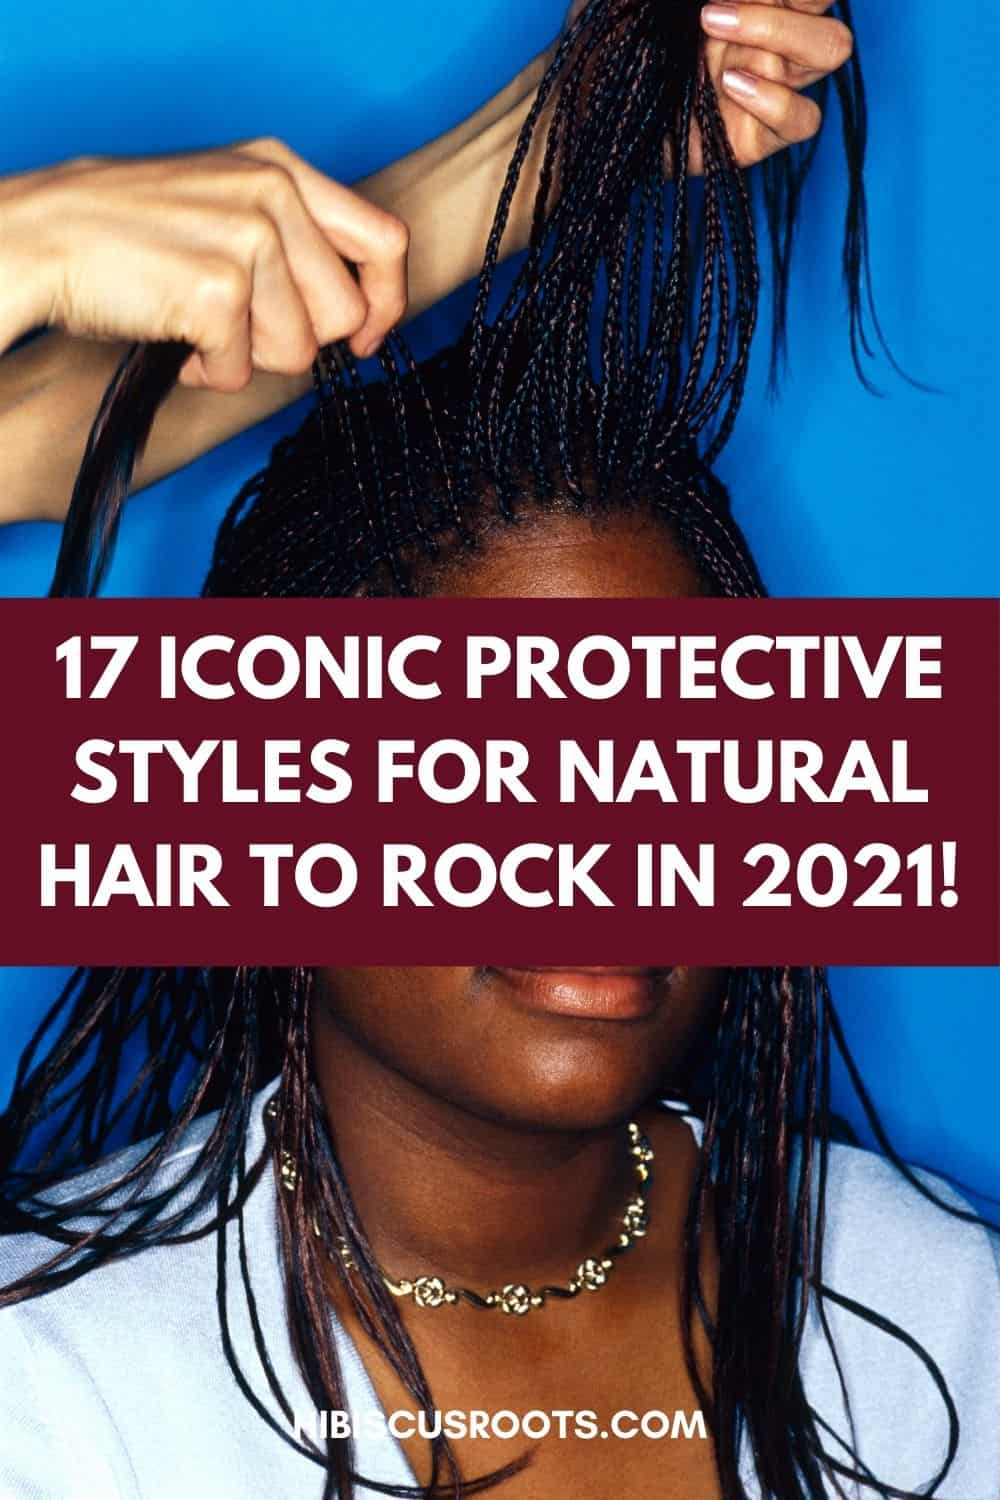 17 Iconic Protective Styles for Natural Hair in 2021!